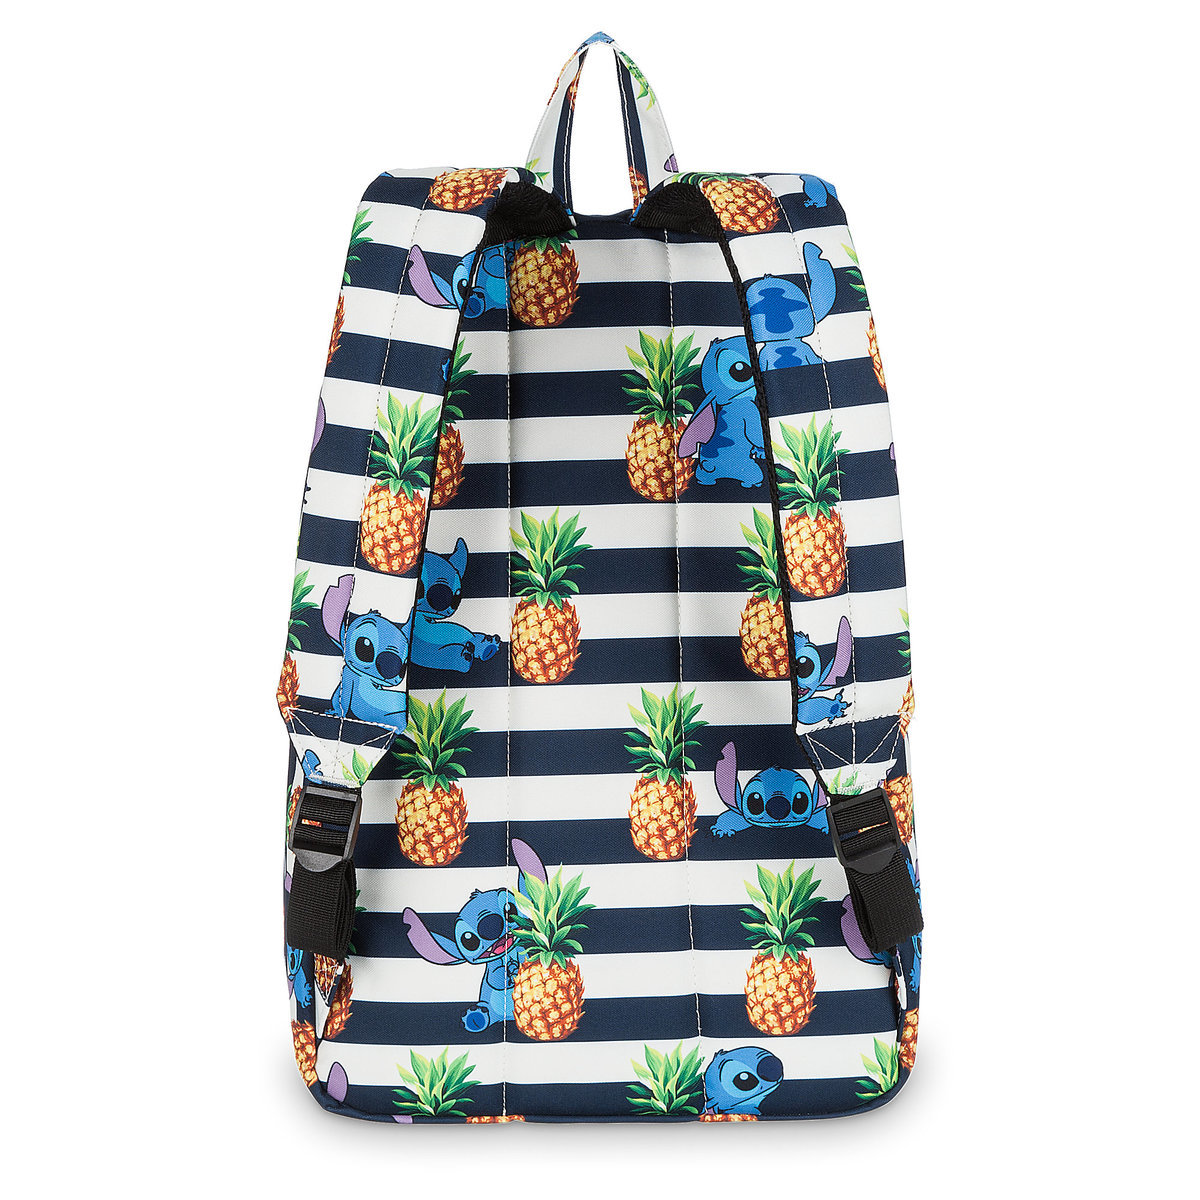 3514995f459 Stitch Backpack by Loungefly